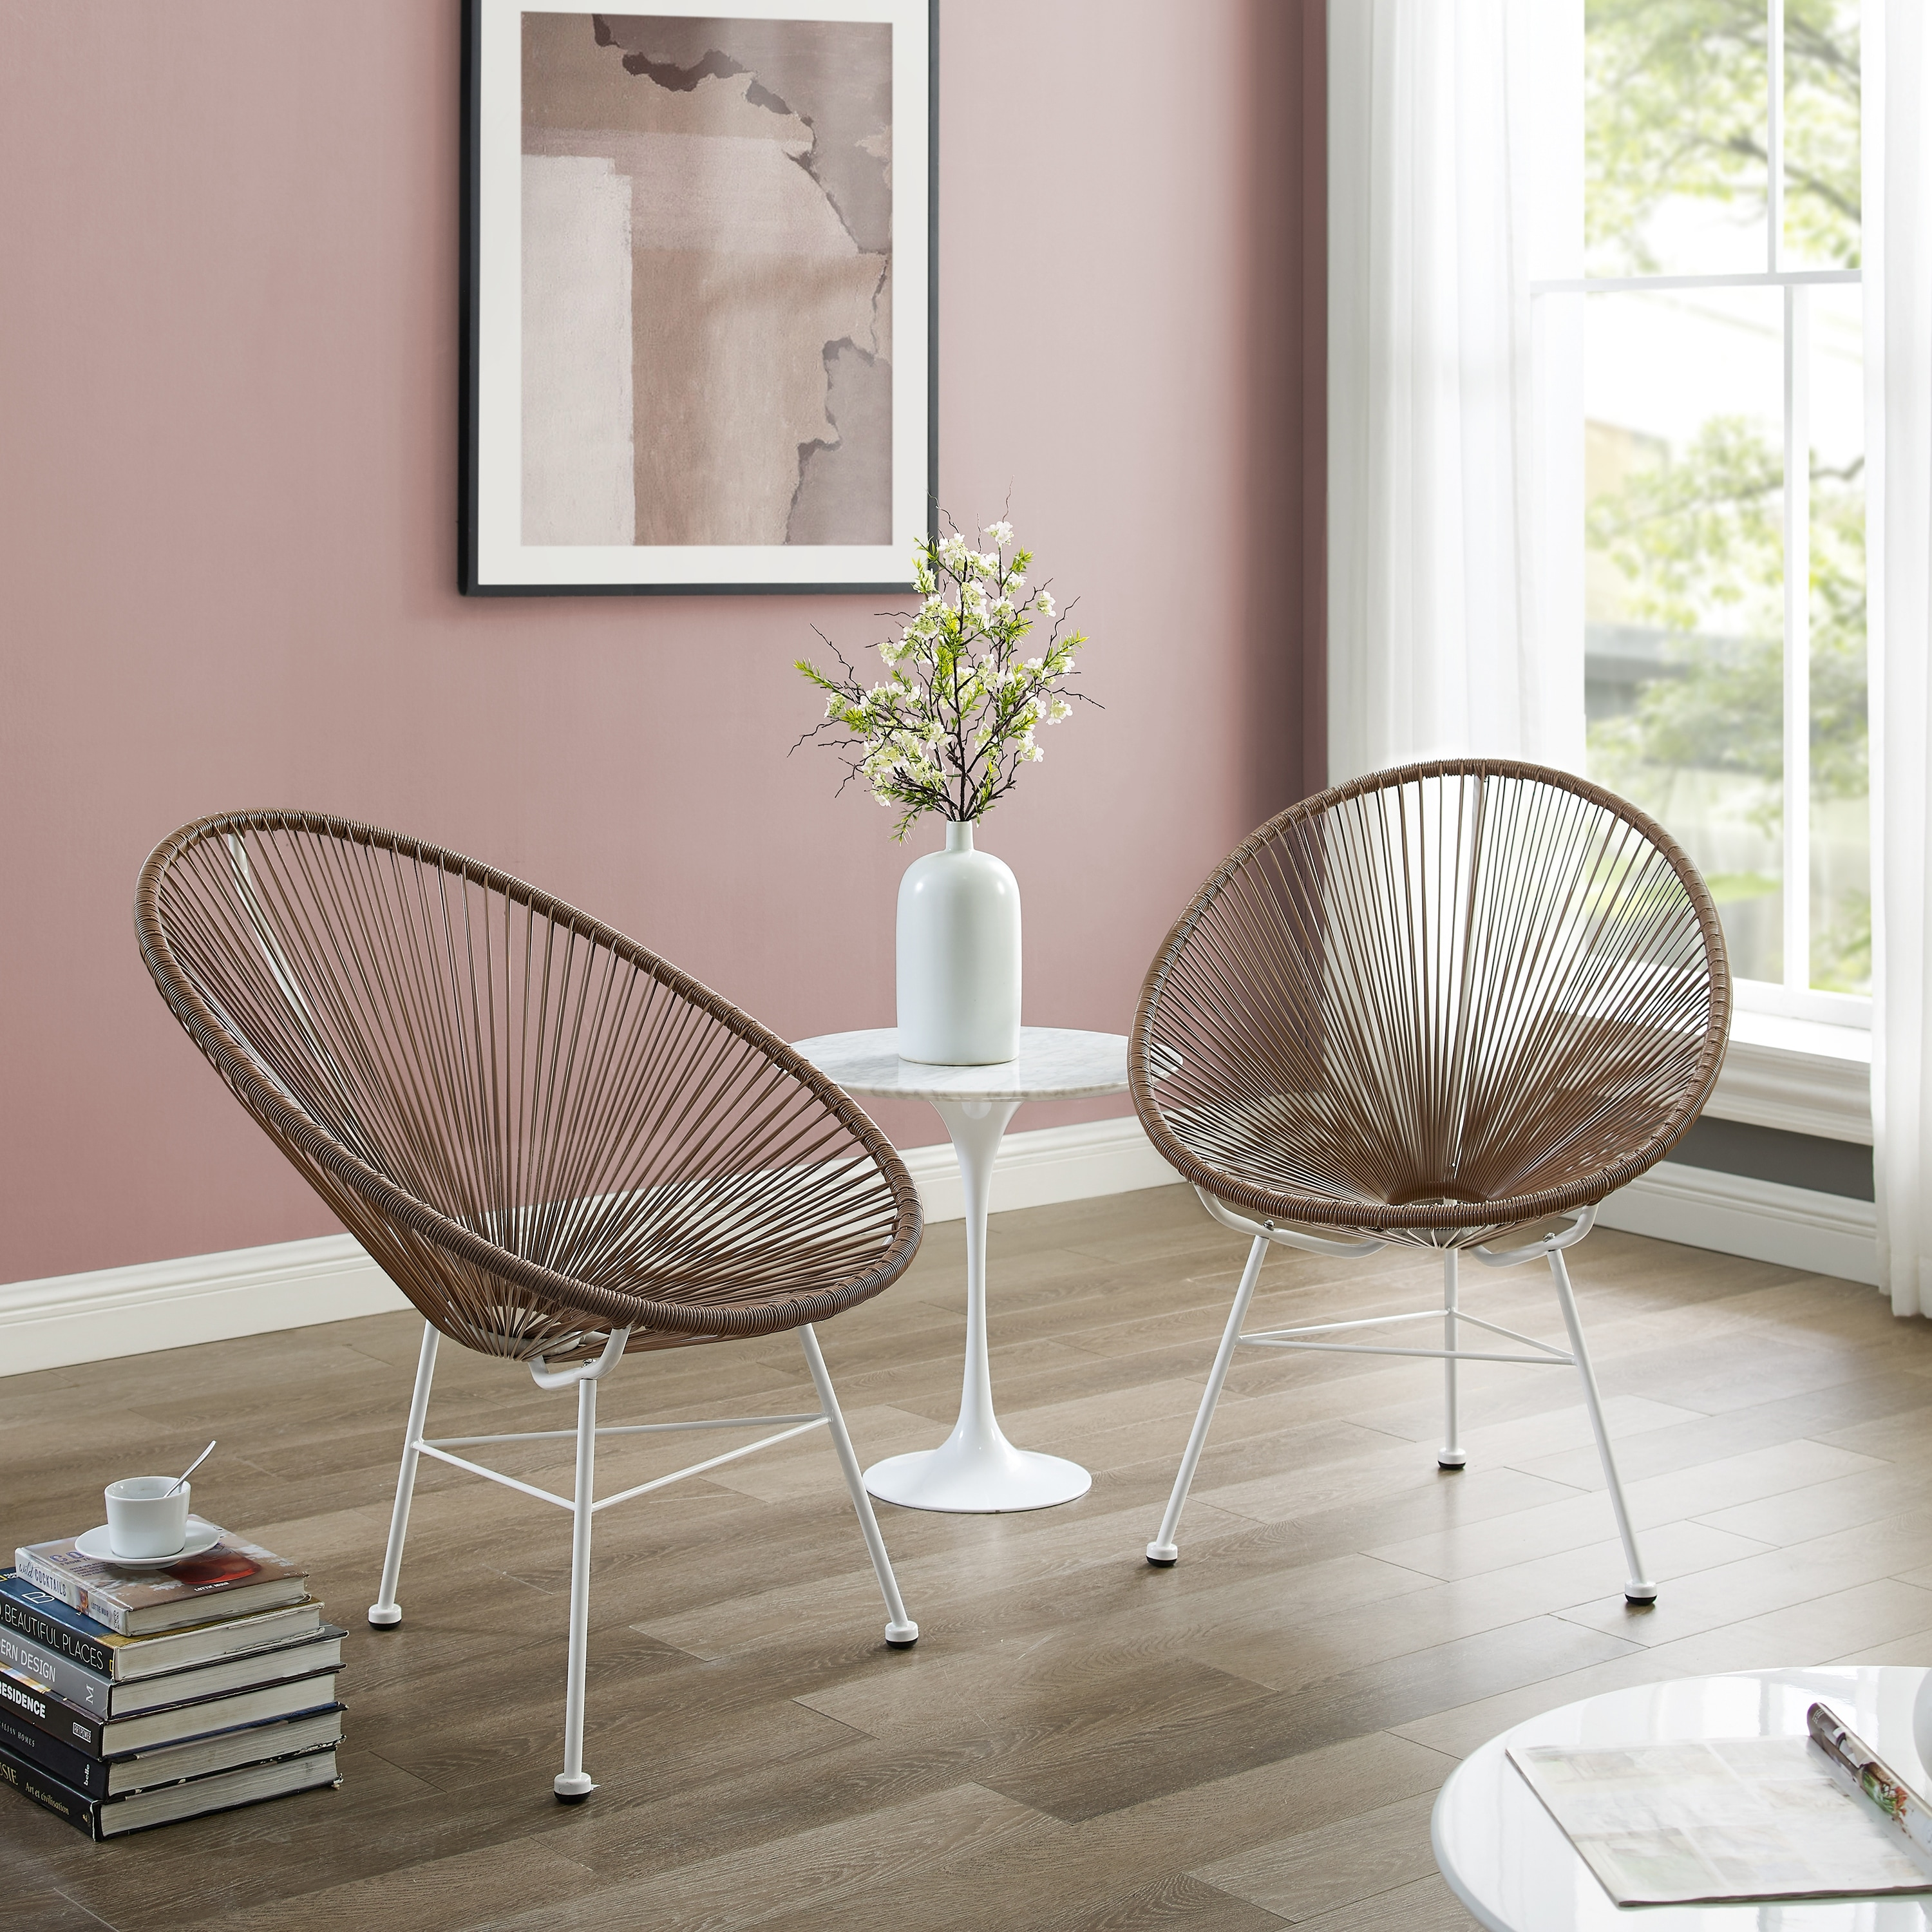 set of 2 wicker chairs corvus sarcelles